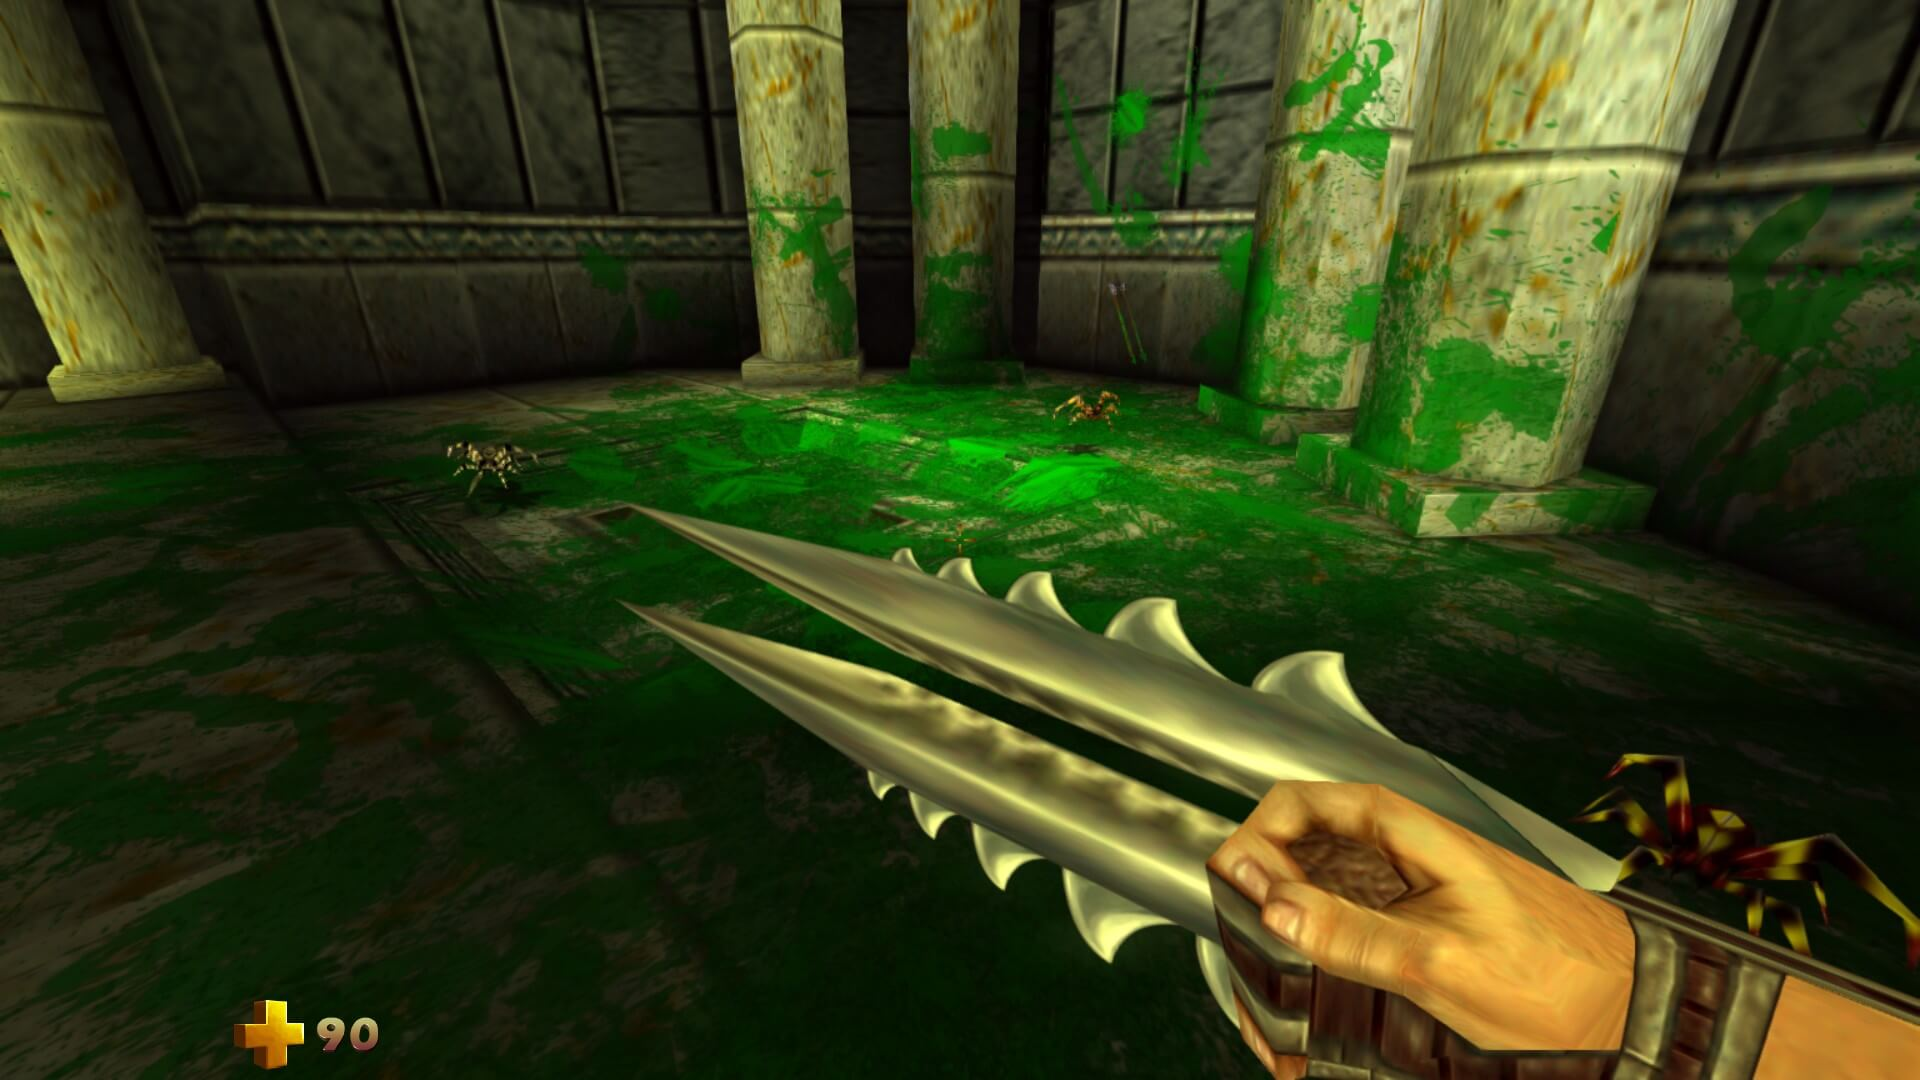 Turok 2: Seeds of Evil Remaster Review